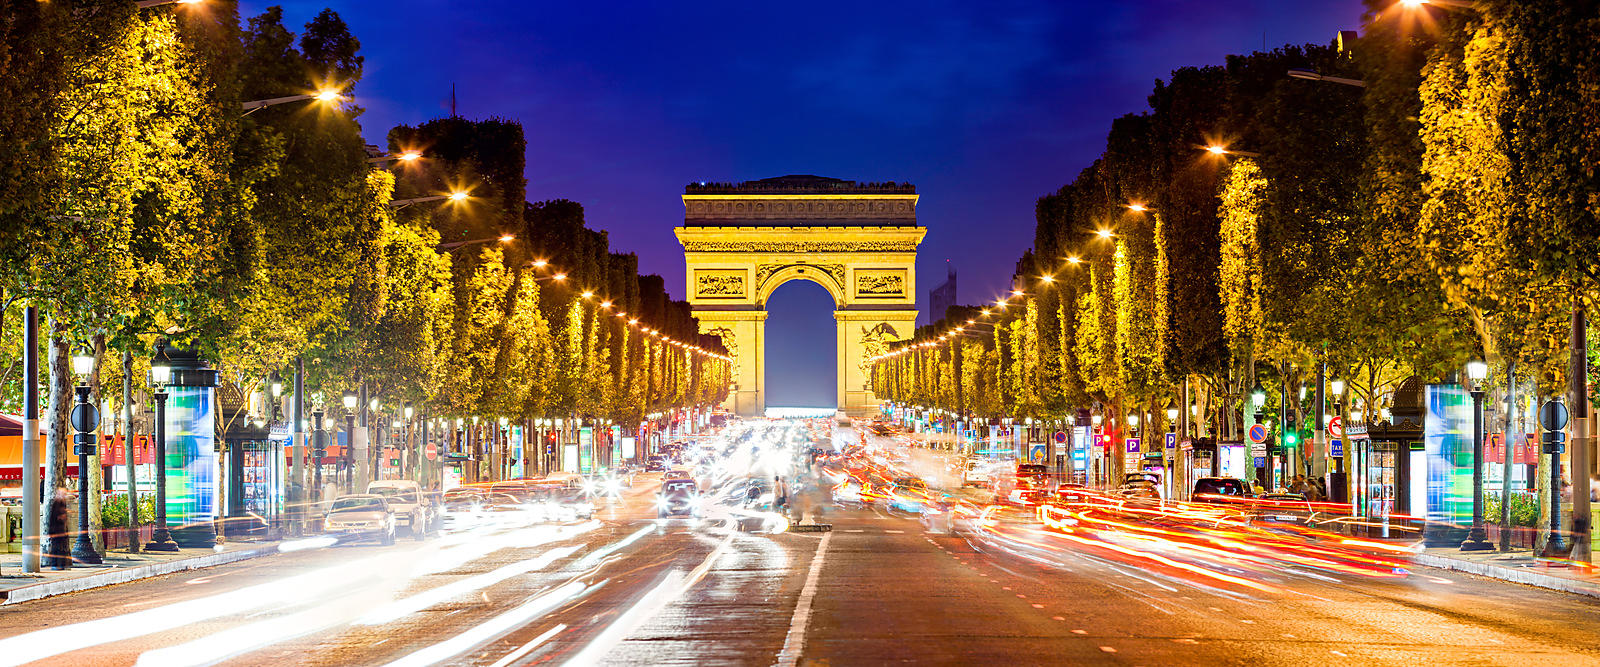 meet me in paris on a champs elysees night